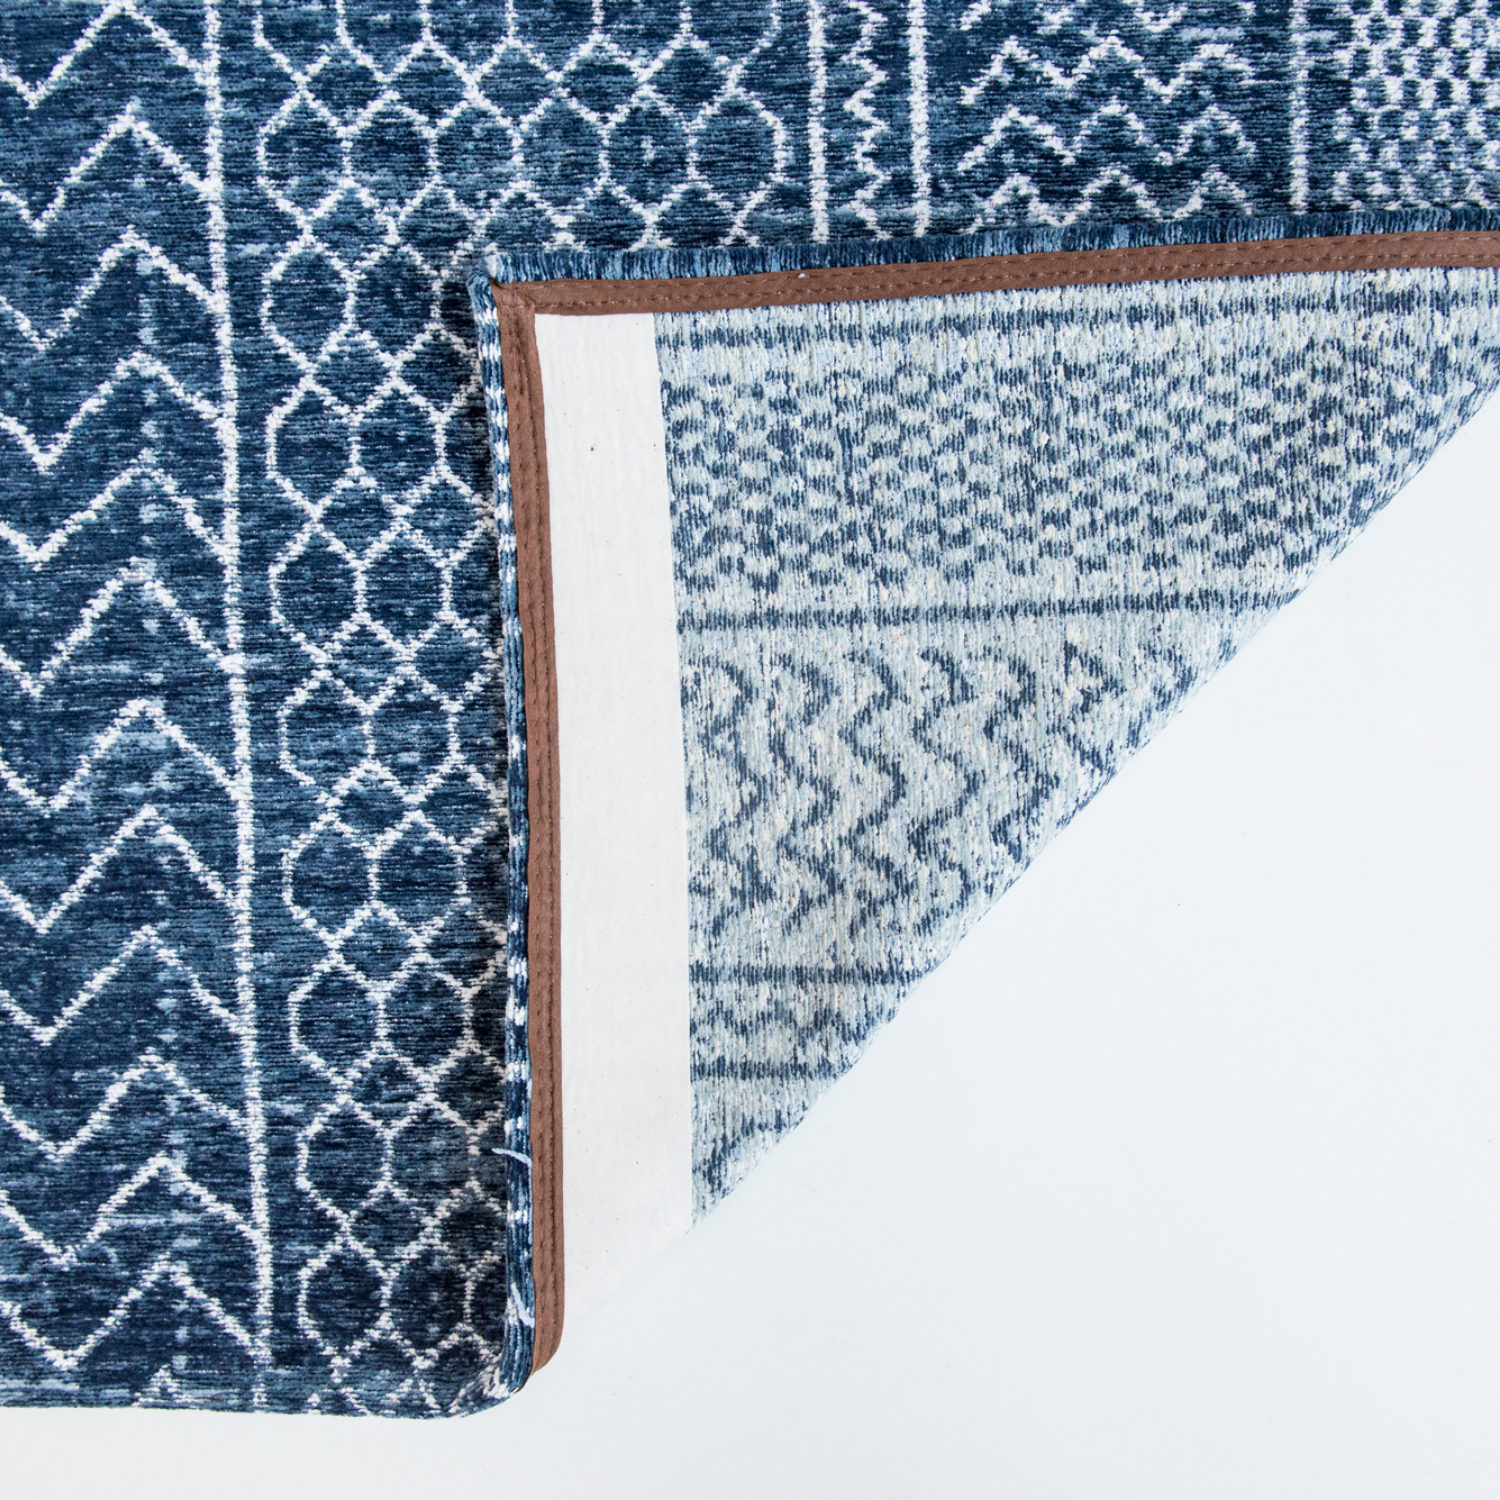 Whimsical motifs made of tribal patterns of the Atlas region